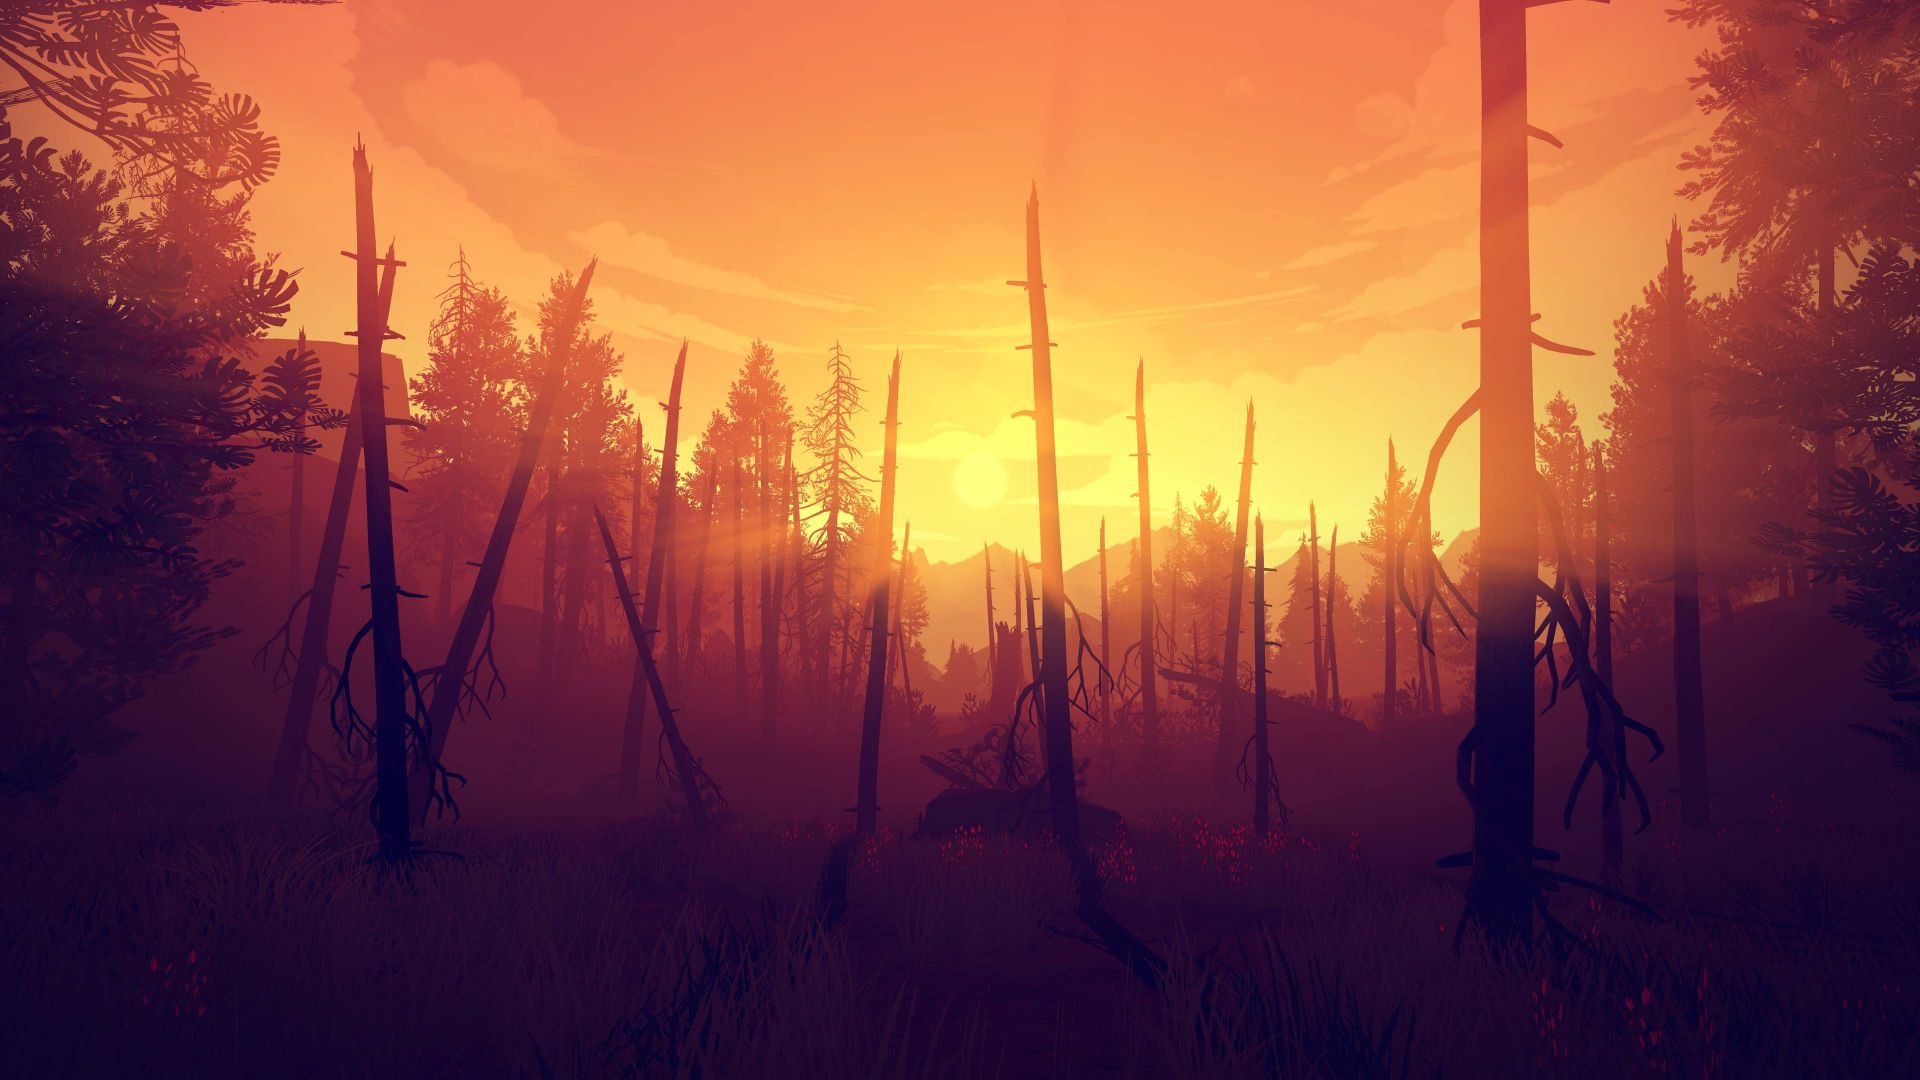 Firewatch, Лучшие игры, игра, квест, ужасы, хоррор, ПК, PC, PS4, Firewatch, Best Games, game, quest, horror, PC, PS4 (horizontal)